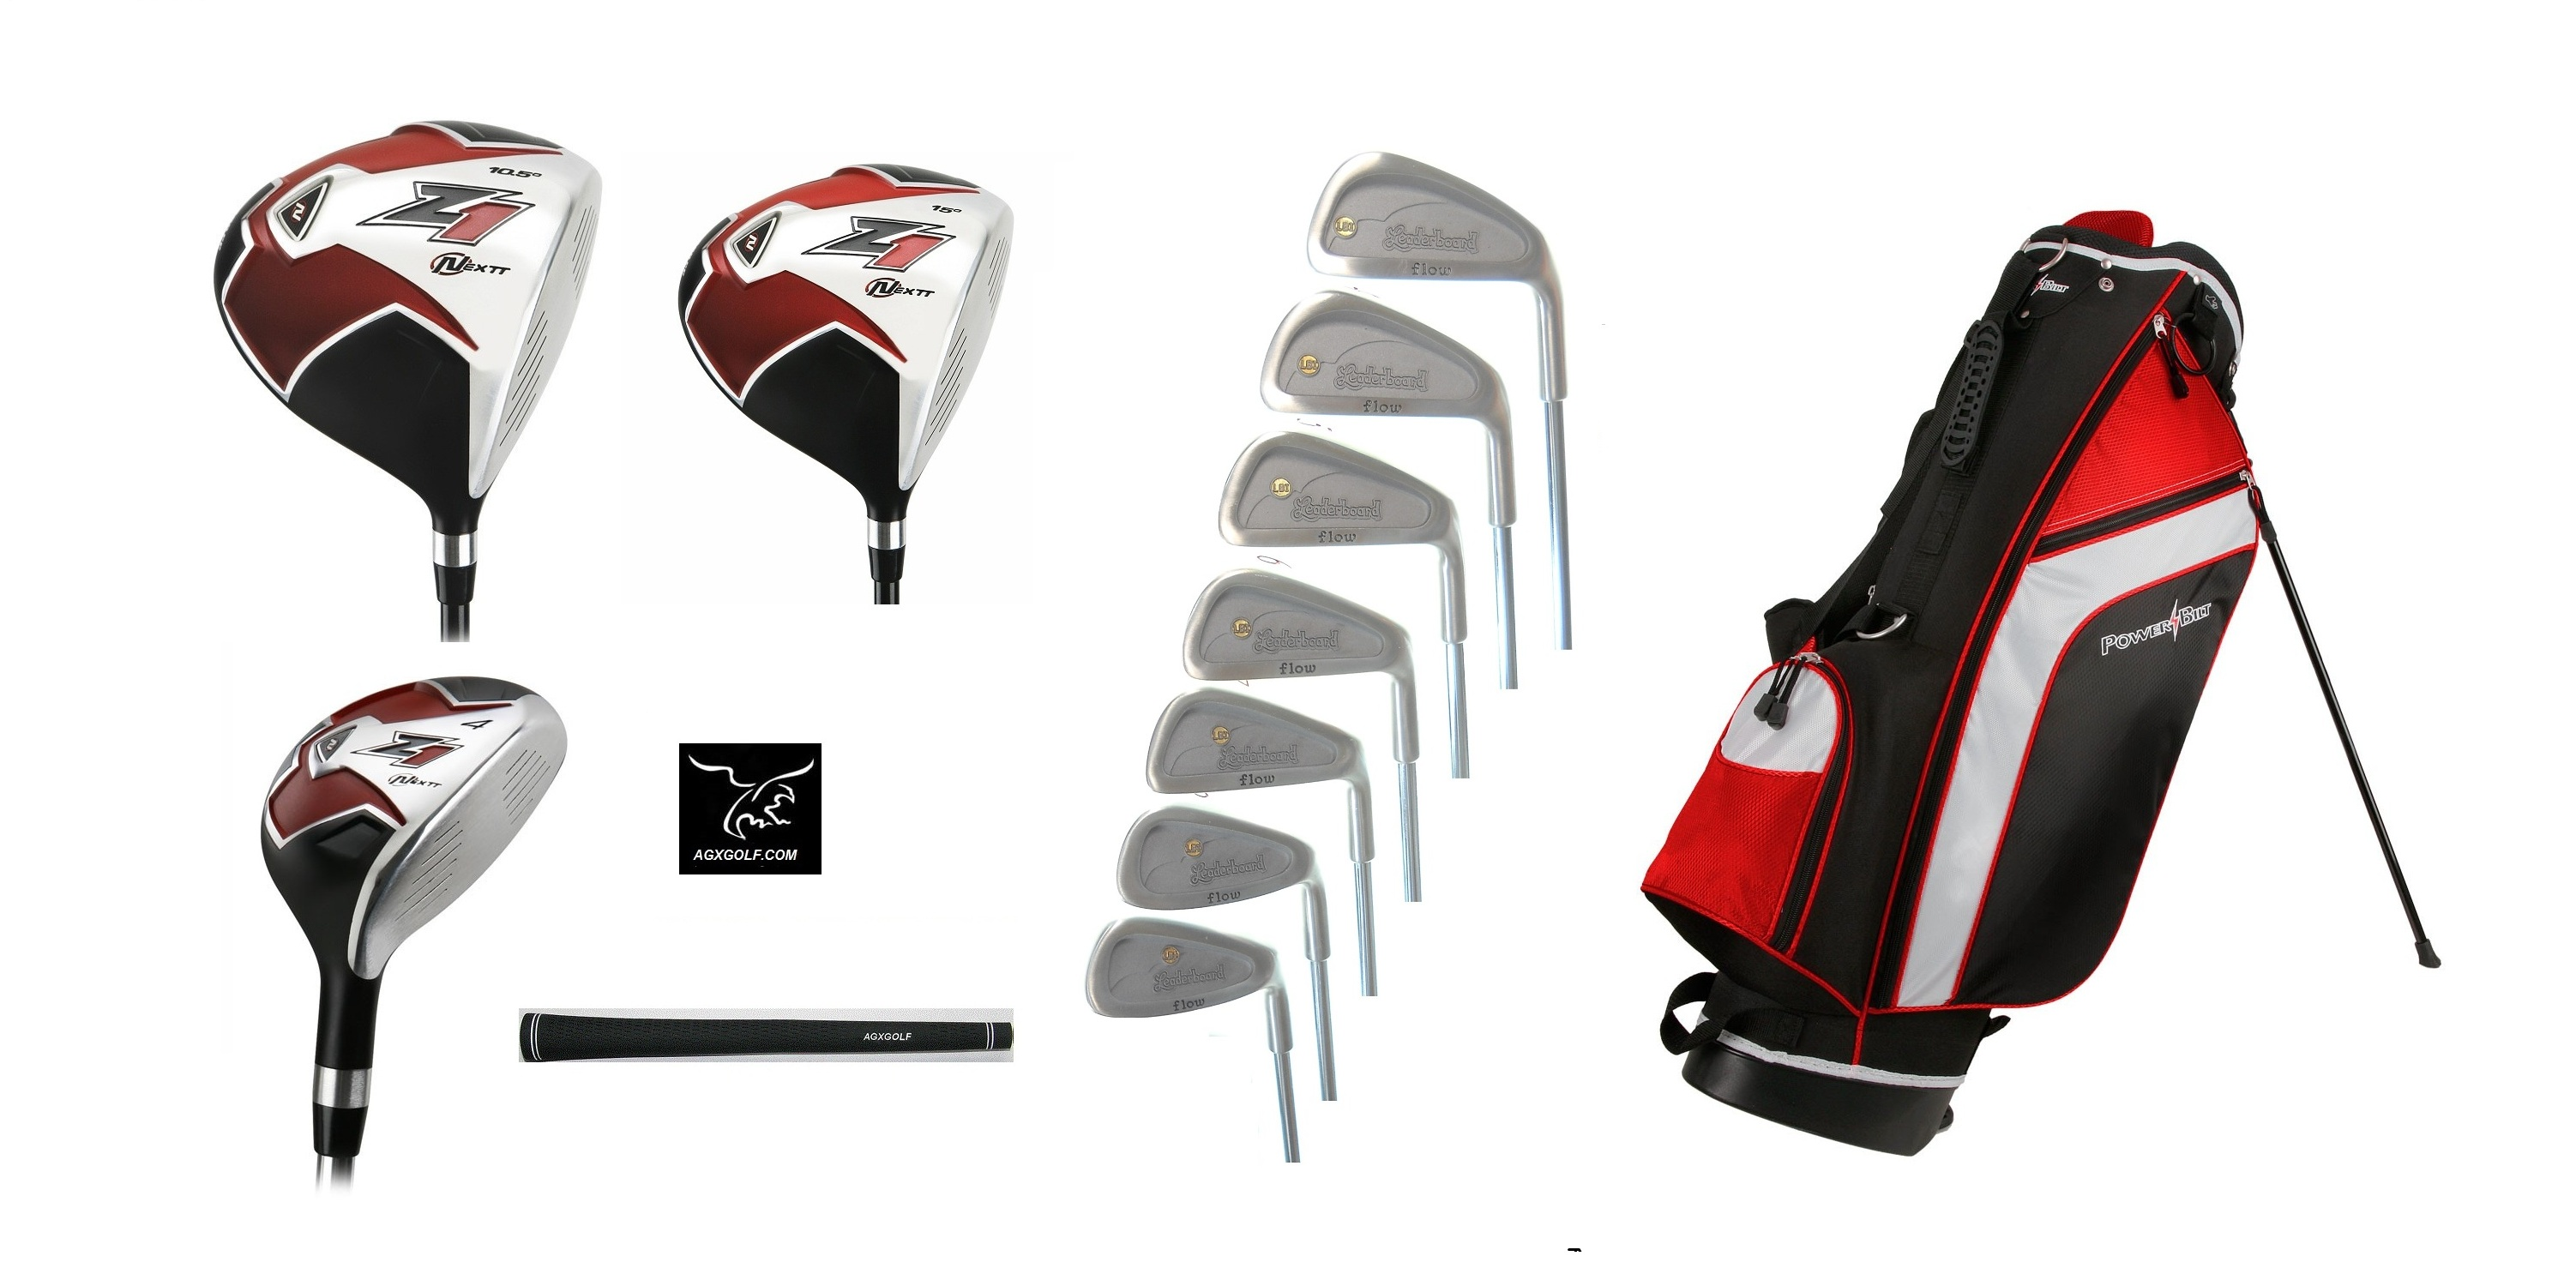 SENIOR MENS TOUR ZONE GOLF CLUB SET 460 DRIVER+WOOD+HYBRID+